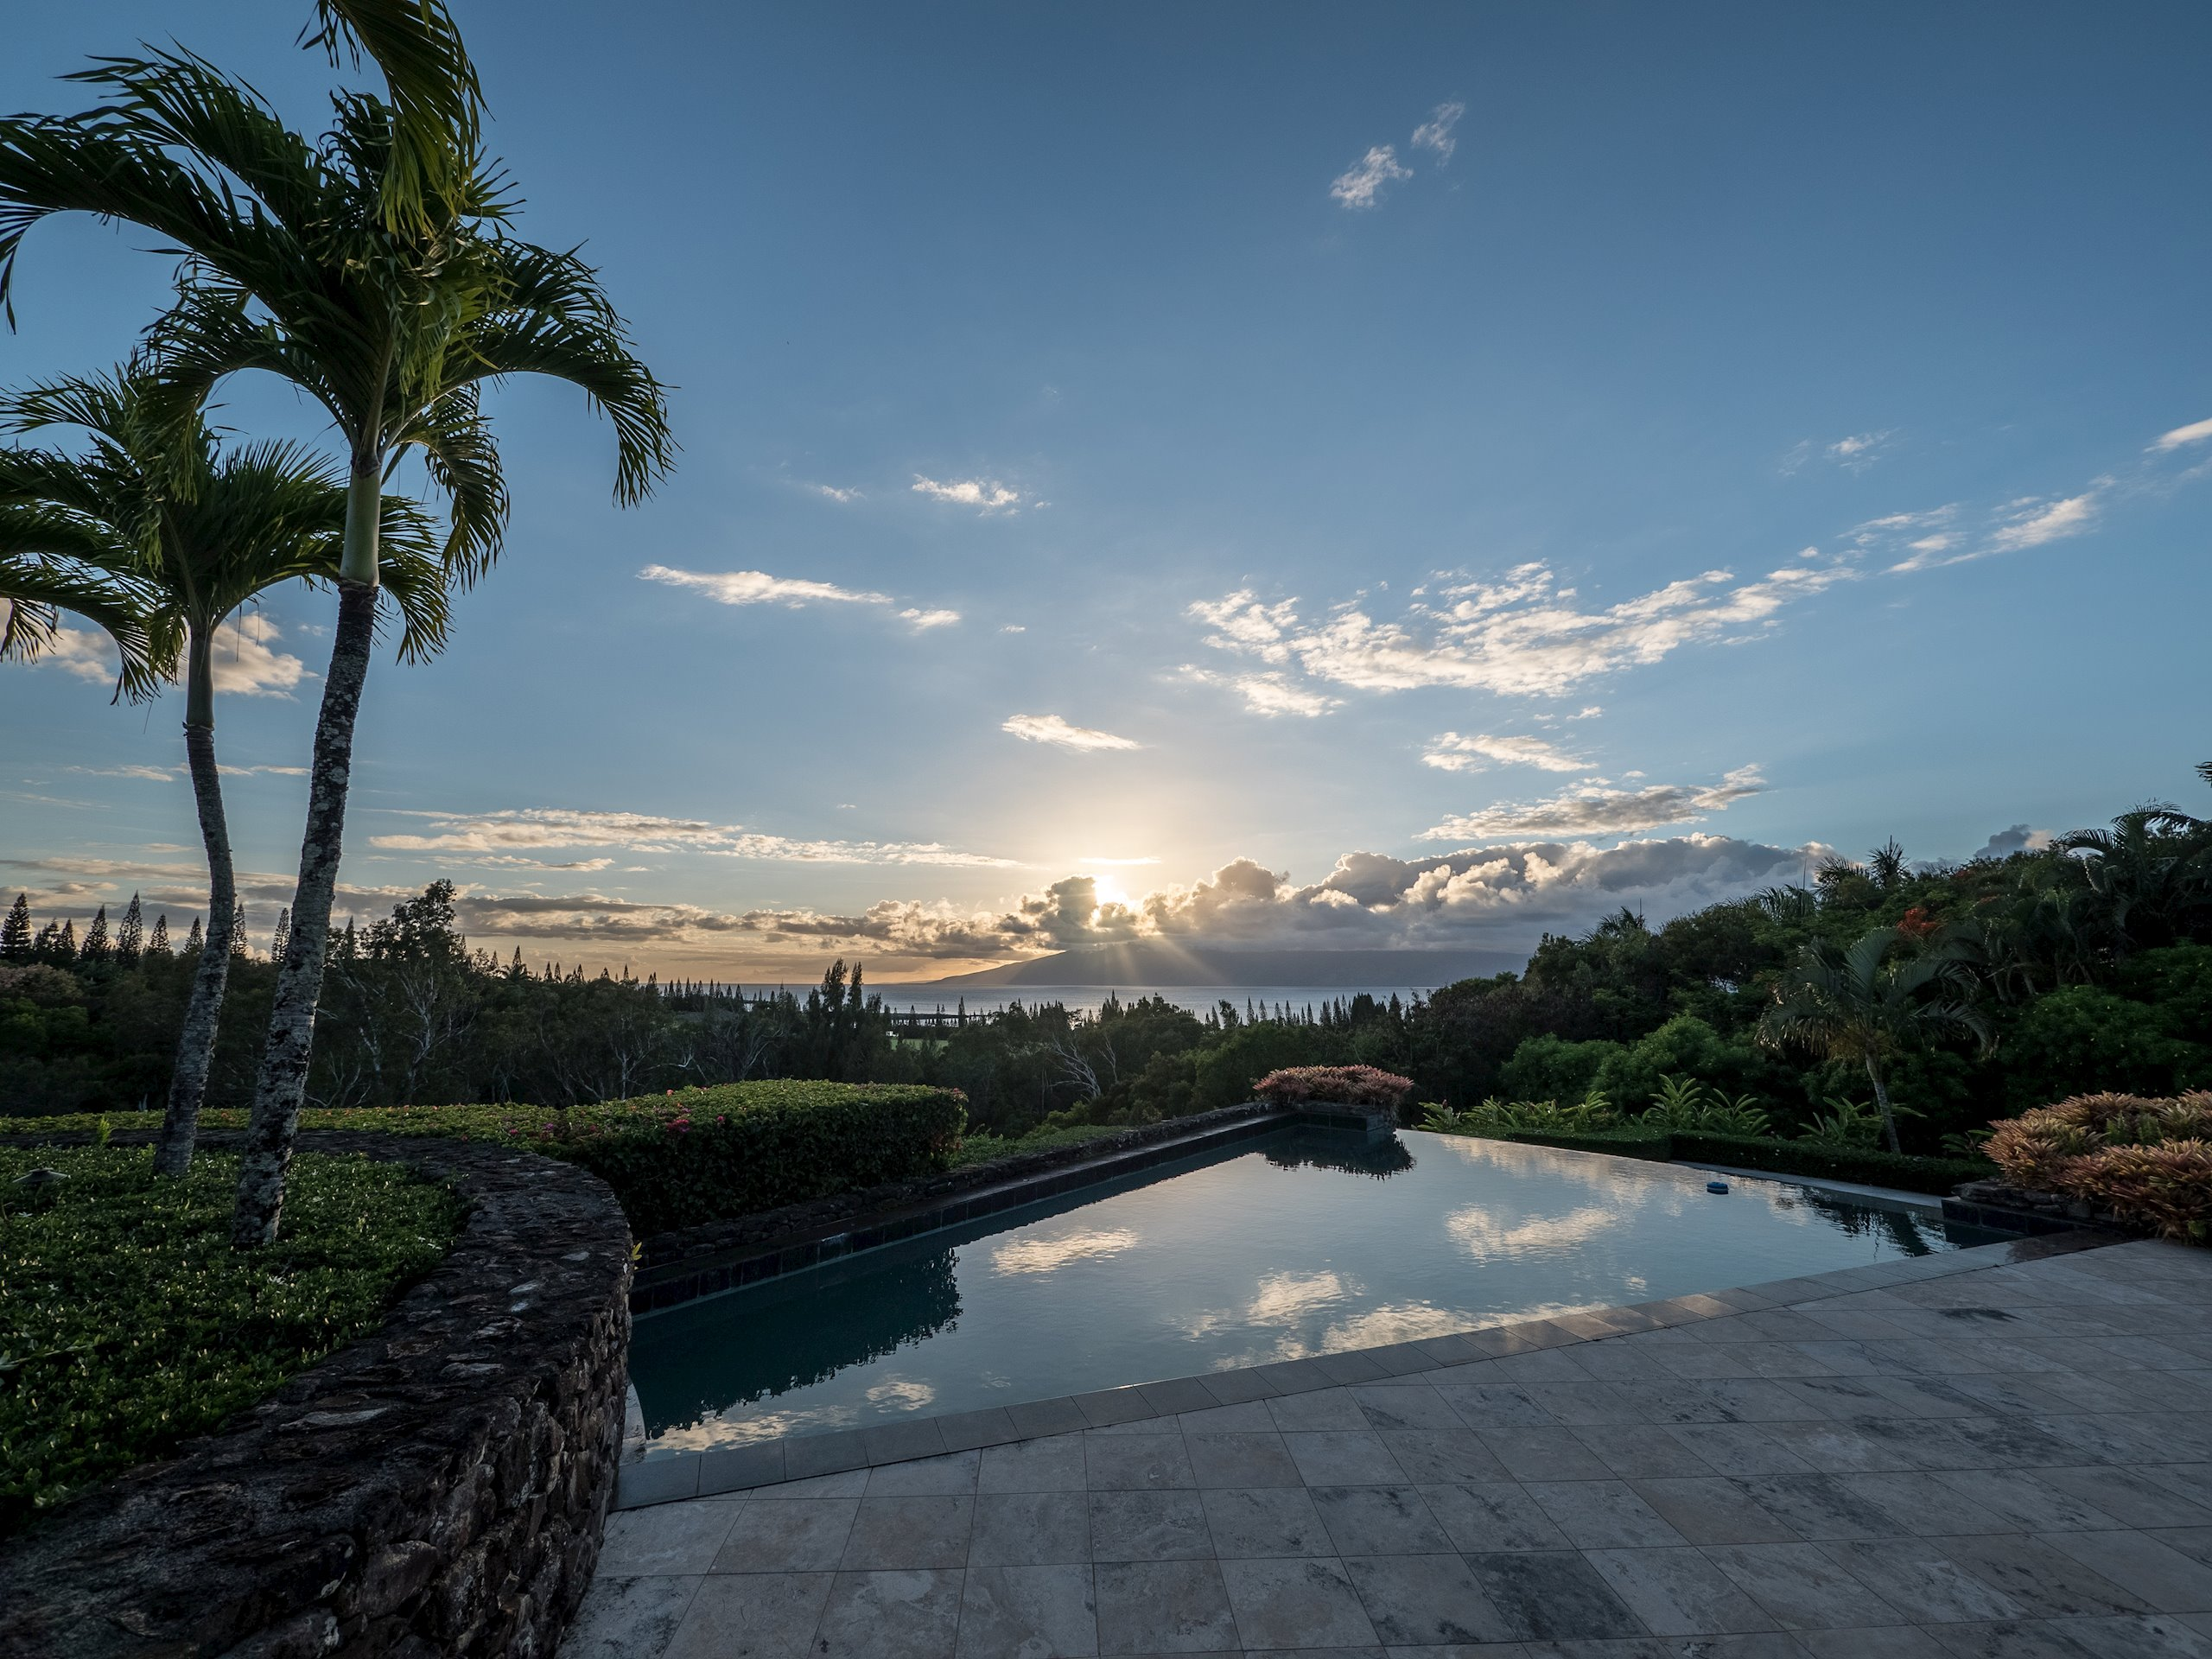 An exclusive estate with a 4,090 sq.ft. 3 bed/3.5 bath home and a 762 sq.ft. 2 Bed/2 Bath guest quarters. Situated on approximately 2.5 acres of lush, tropical landscaped agricultural land at the end of Plantation Club Drive in Kapalua. This quiet and secluded retreat has two luxurious master suites, gourmet kitchen, great room and office. Additional features include a hand-laid rock fireplace and feature walls, workout room, porte cochère and 3 car garage. Fabulous indoor/outdoor living with unique pool, spa and expansive outdoor entertainment area with covered barbecue area and fireplace. Enjoy exceptional views of sunsets over the azure Pacific Ocean while entertaining friends and family. This spectacular property has a commanding view the beautiful island of Molokai. It overlooks the emerald fairways of the PGA championship Plantation Golf Course and is currently owned by a celebrity golfer.